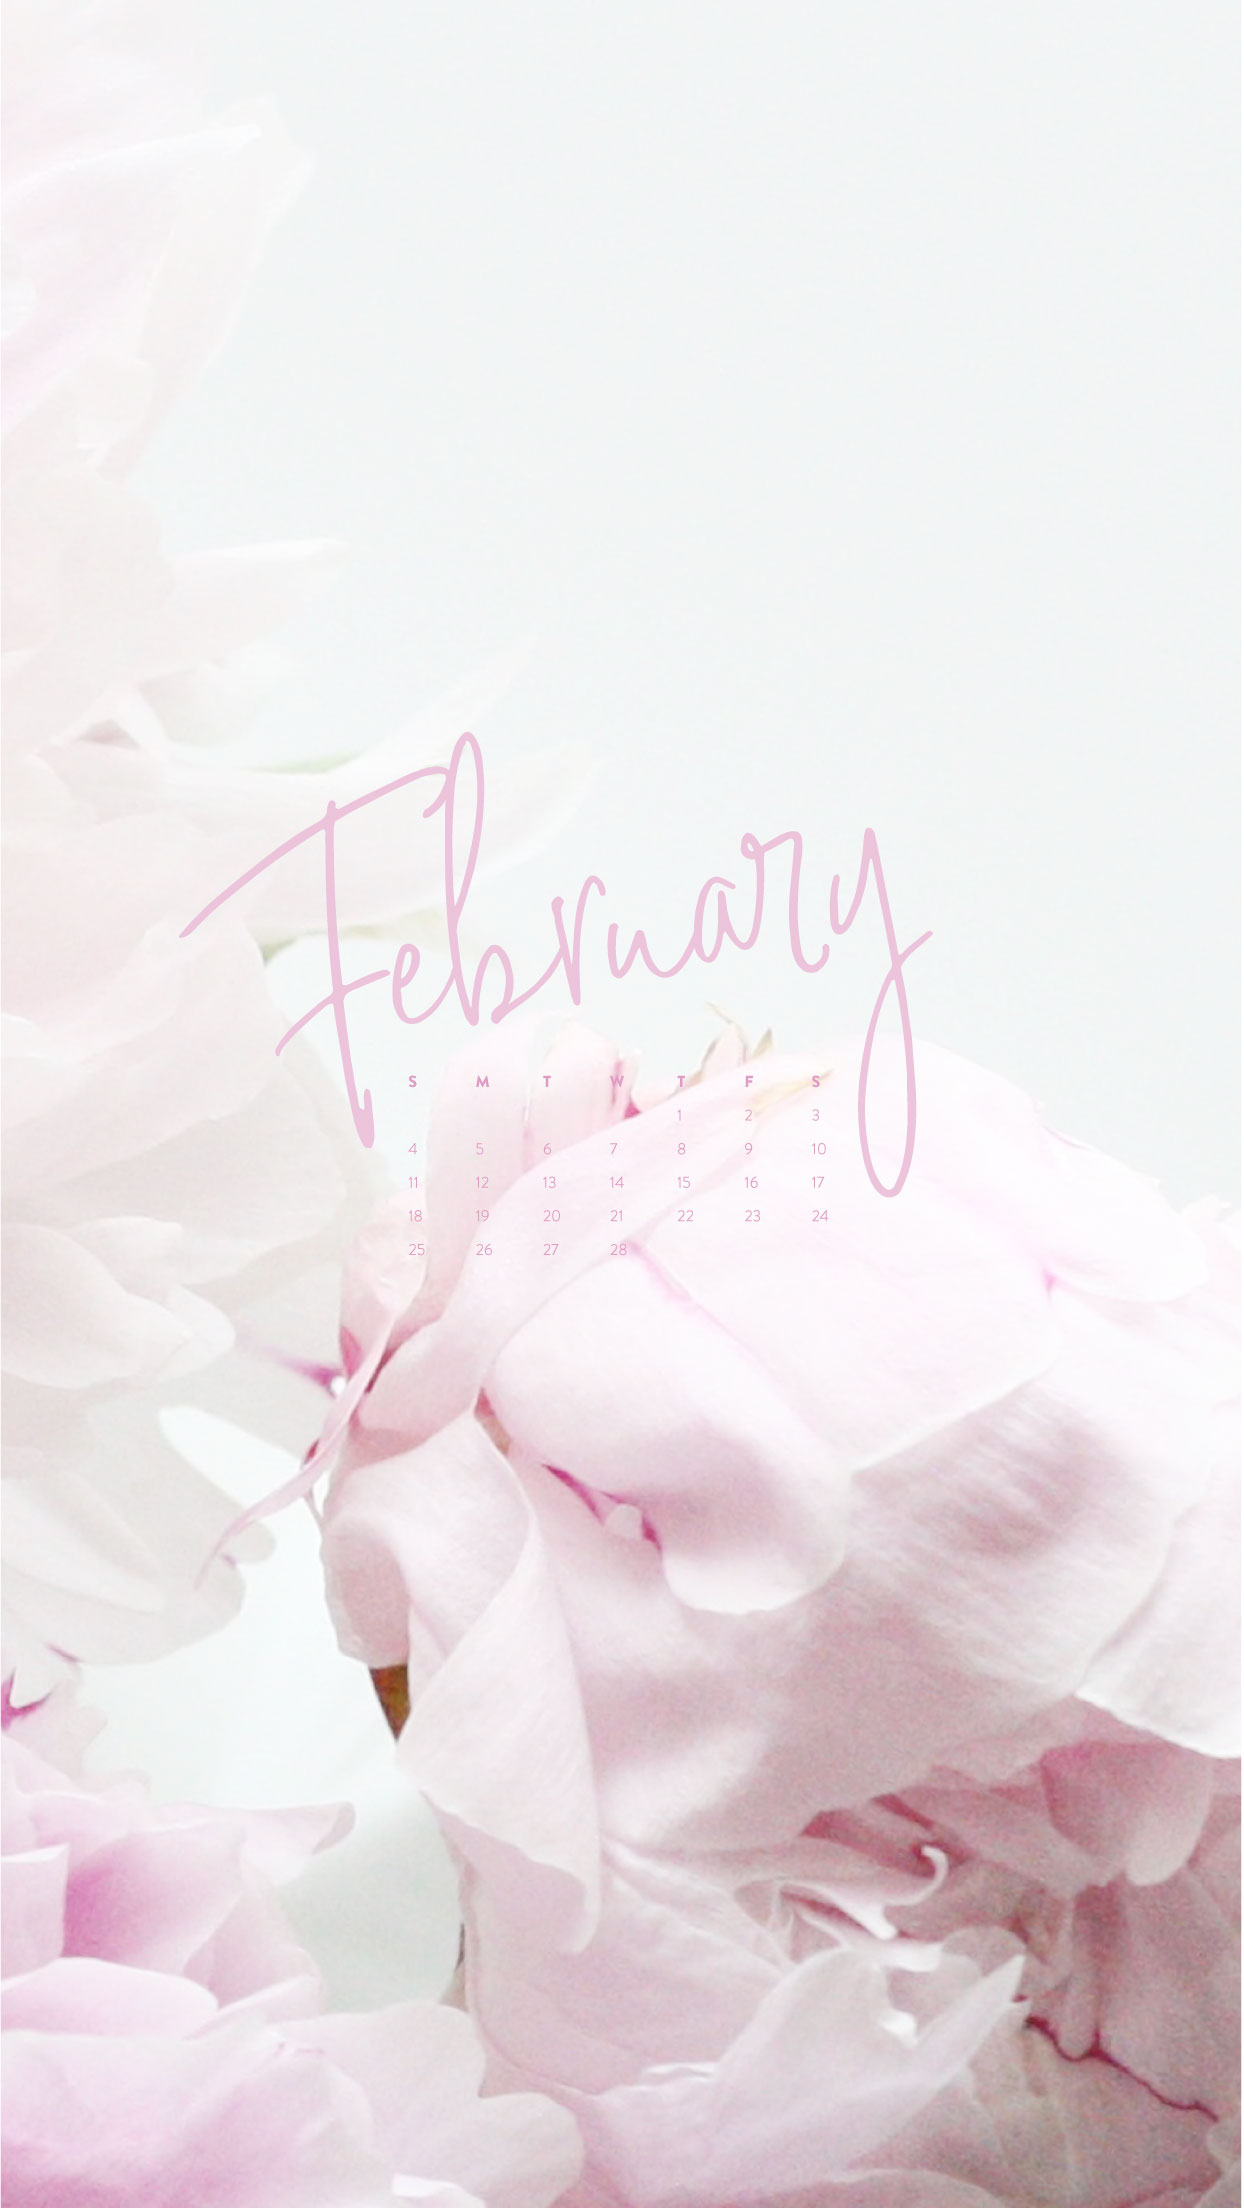 February Wallpapers Phone Tablet Desktop Ashlee Proffitt